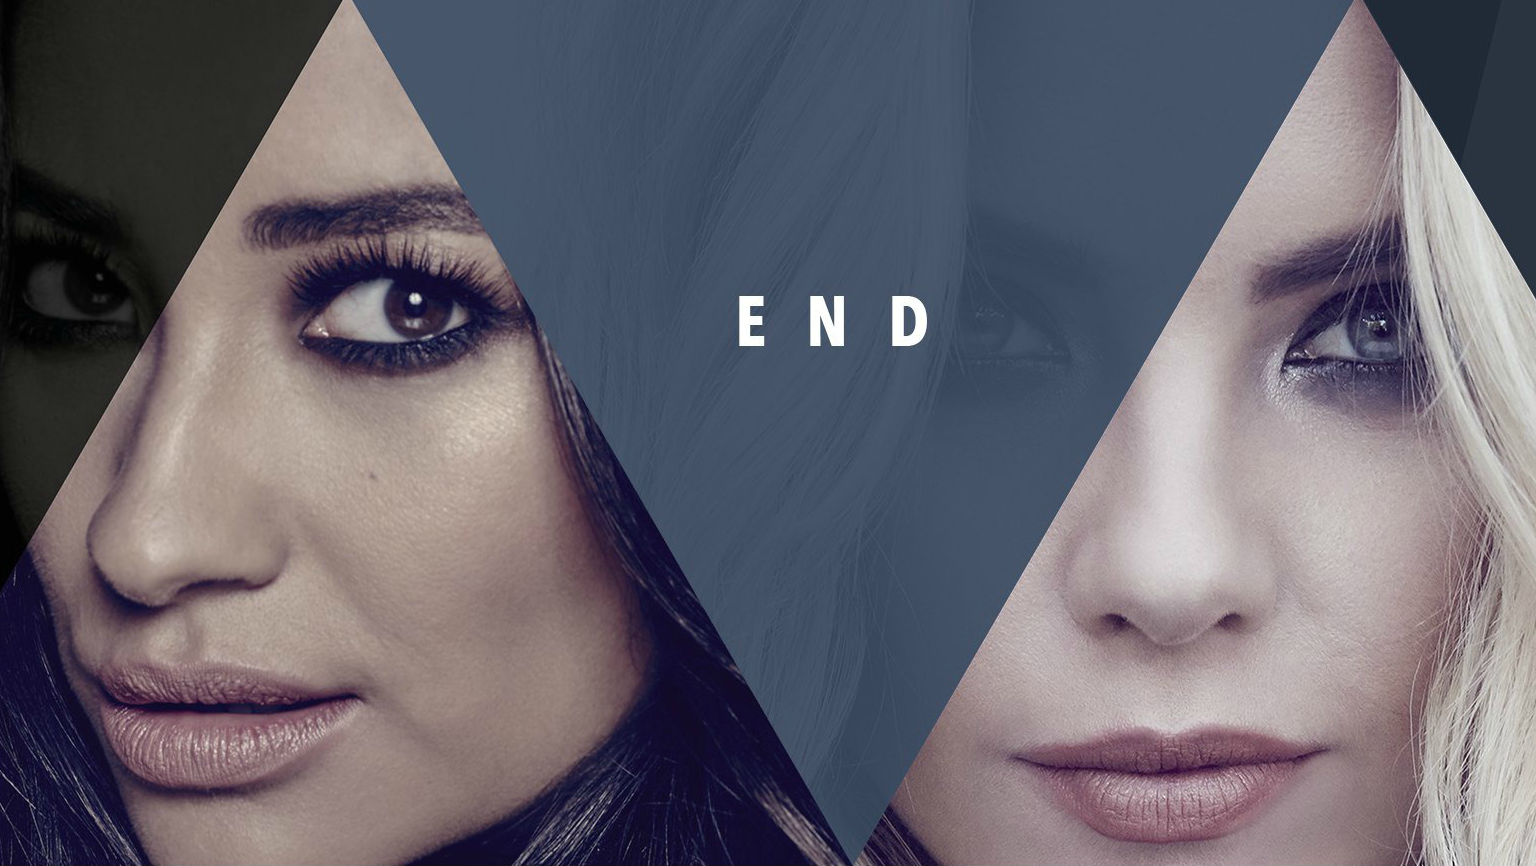 Let S Talk About Saying Goodbye To Pretty Little Liars Eclectic Pop